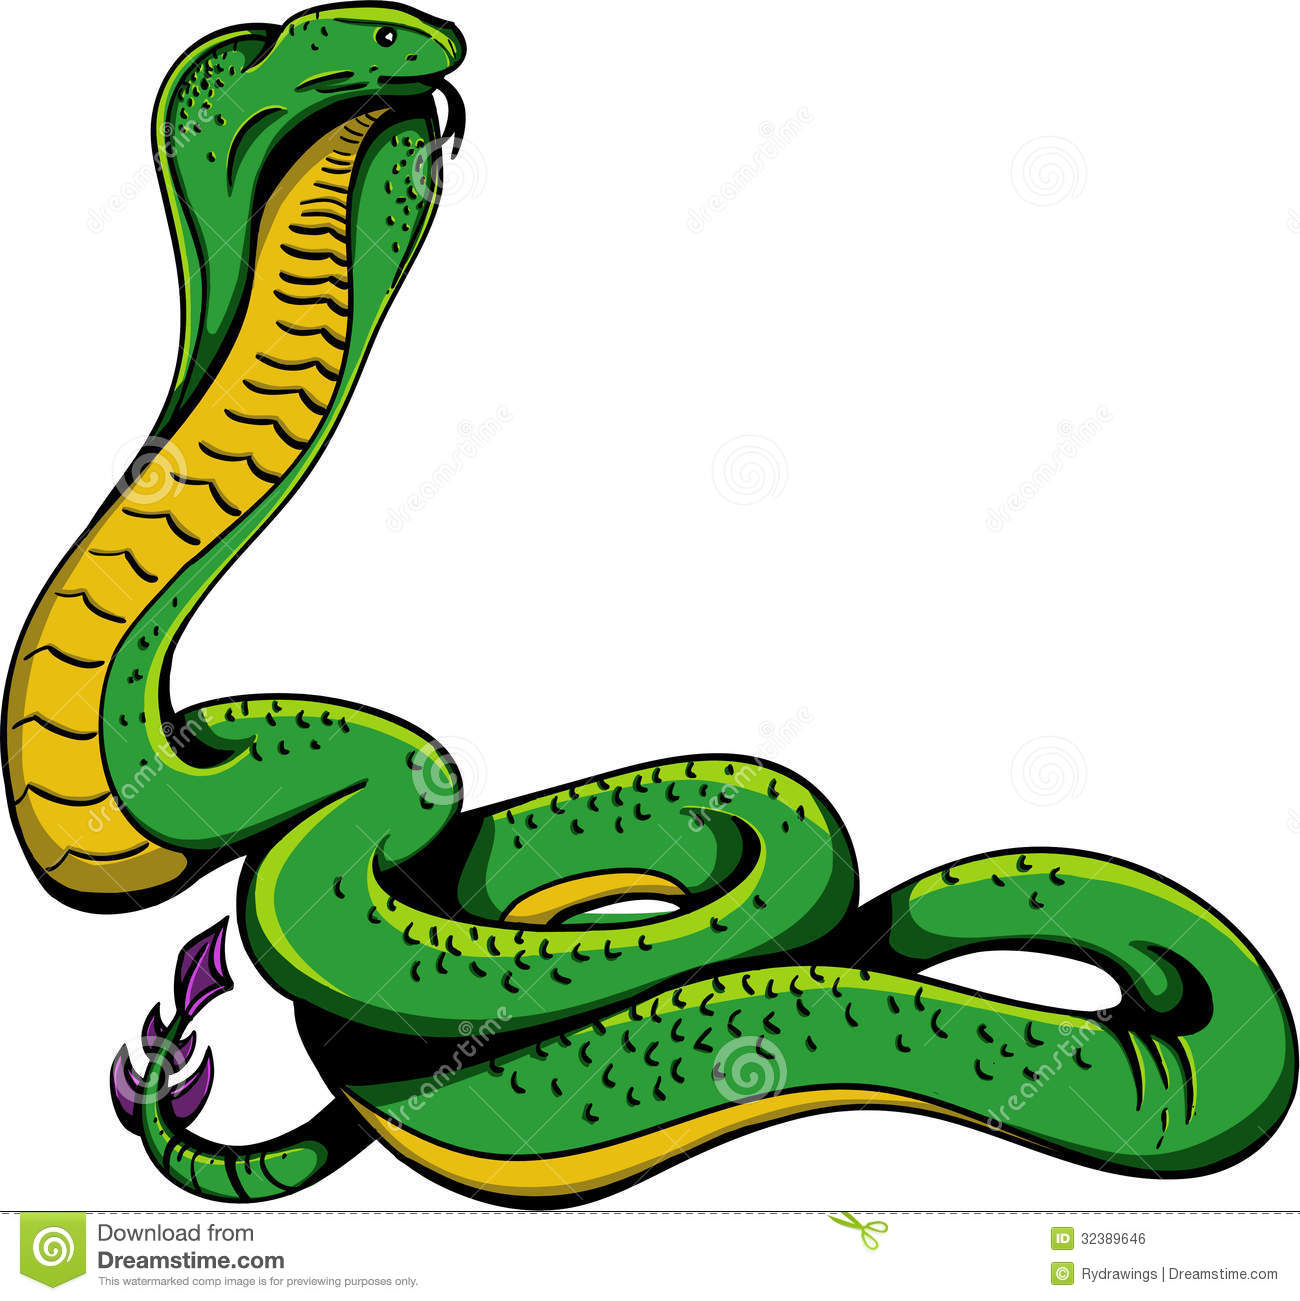 Cobra Snake Royalty Free Stock Image - Image: 32389646